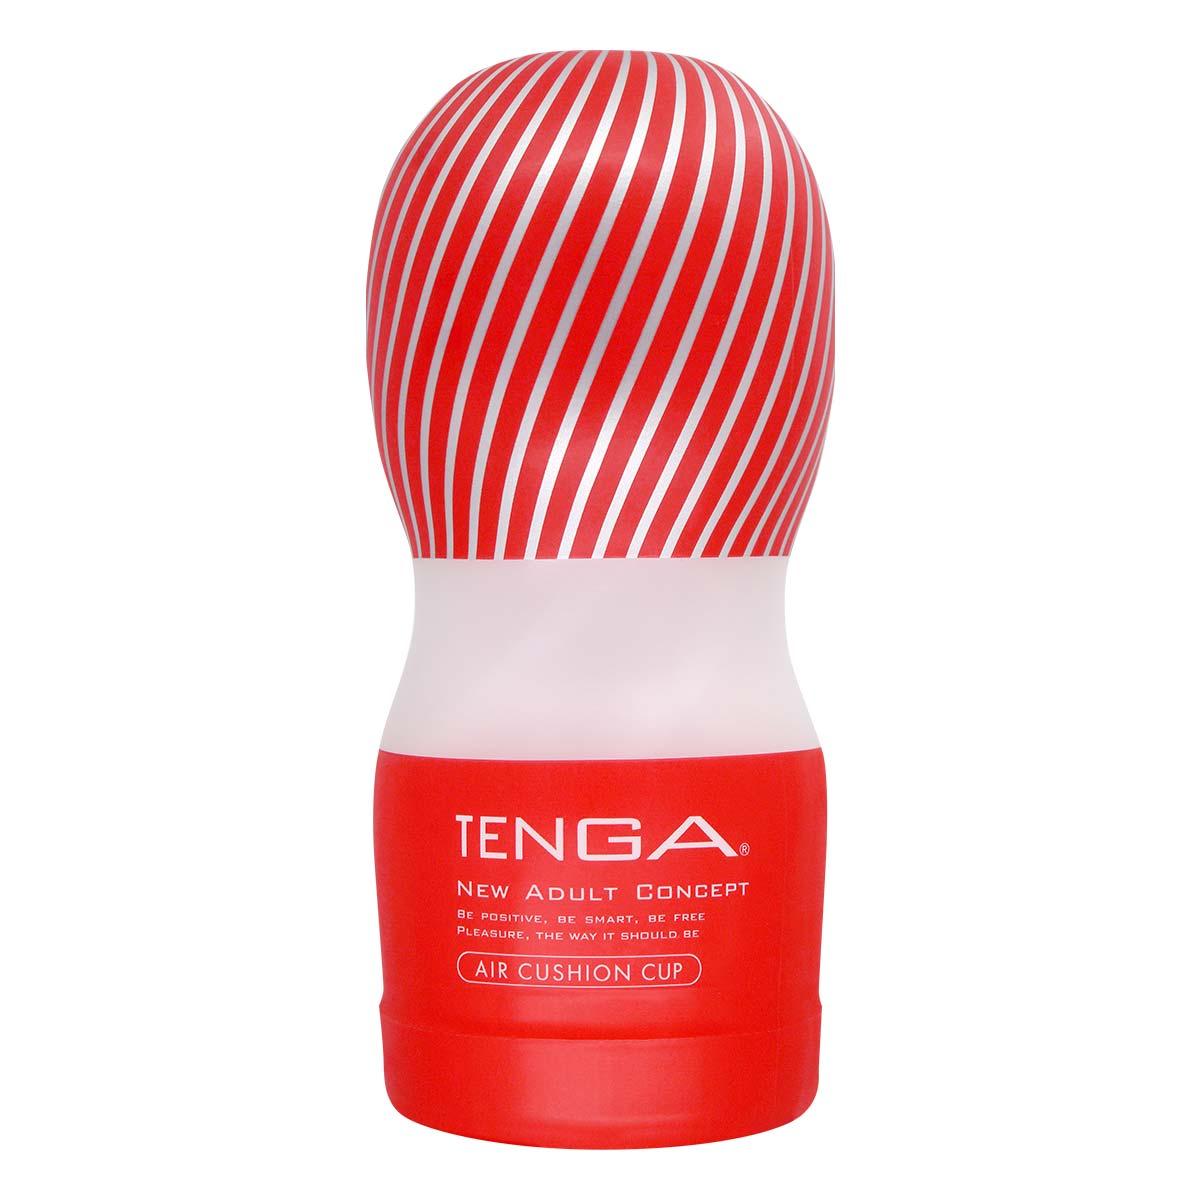 TENGA AIR CUSHION CUP 2nd Generation